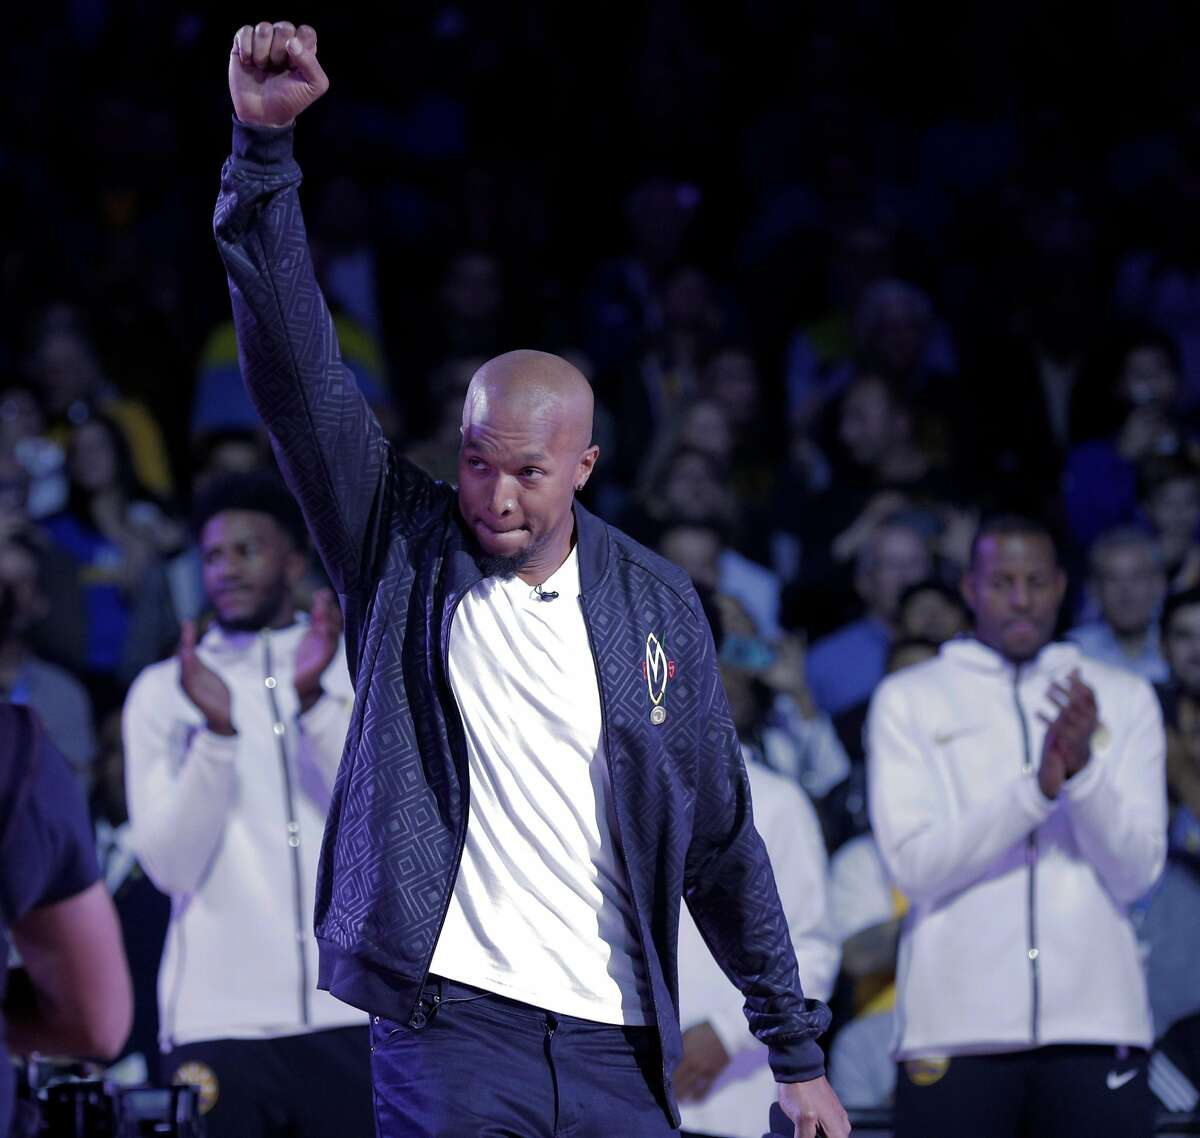 David West gestures as he goes up to recieve his championship ring before the Golden State Warriors played the Oklahoma City Thunder at Oracle Arena in Oakland, Calif., on Tuesday, October 16, 2018. The Warriors received their 2018 NBA Championship rings and saw their championship banner raised in the arena